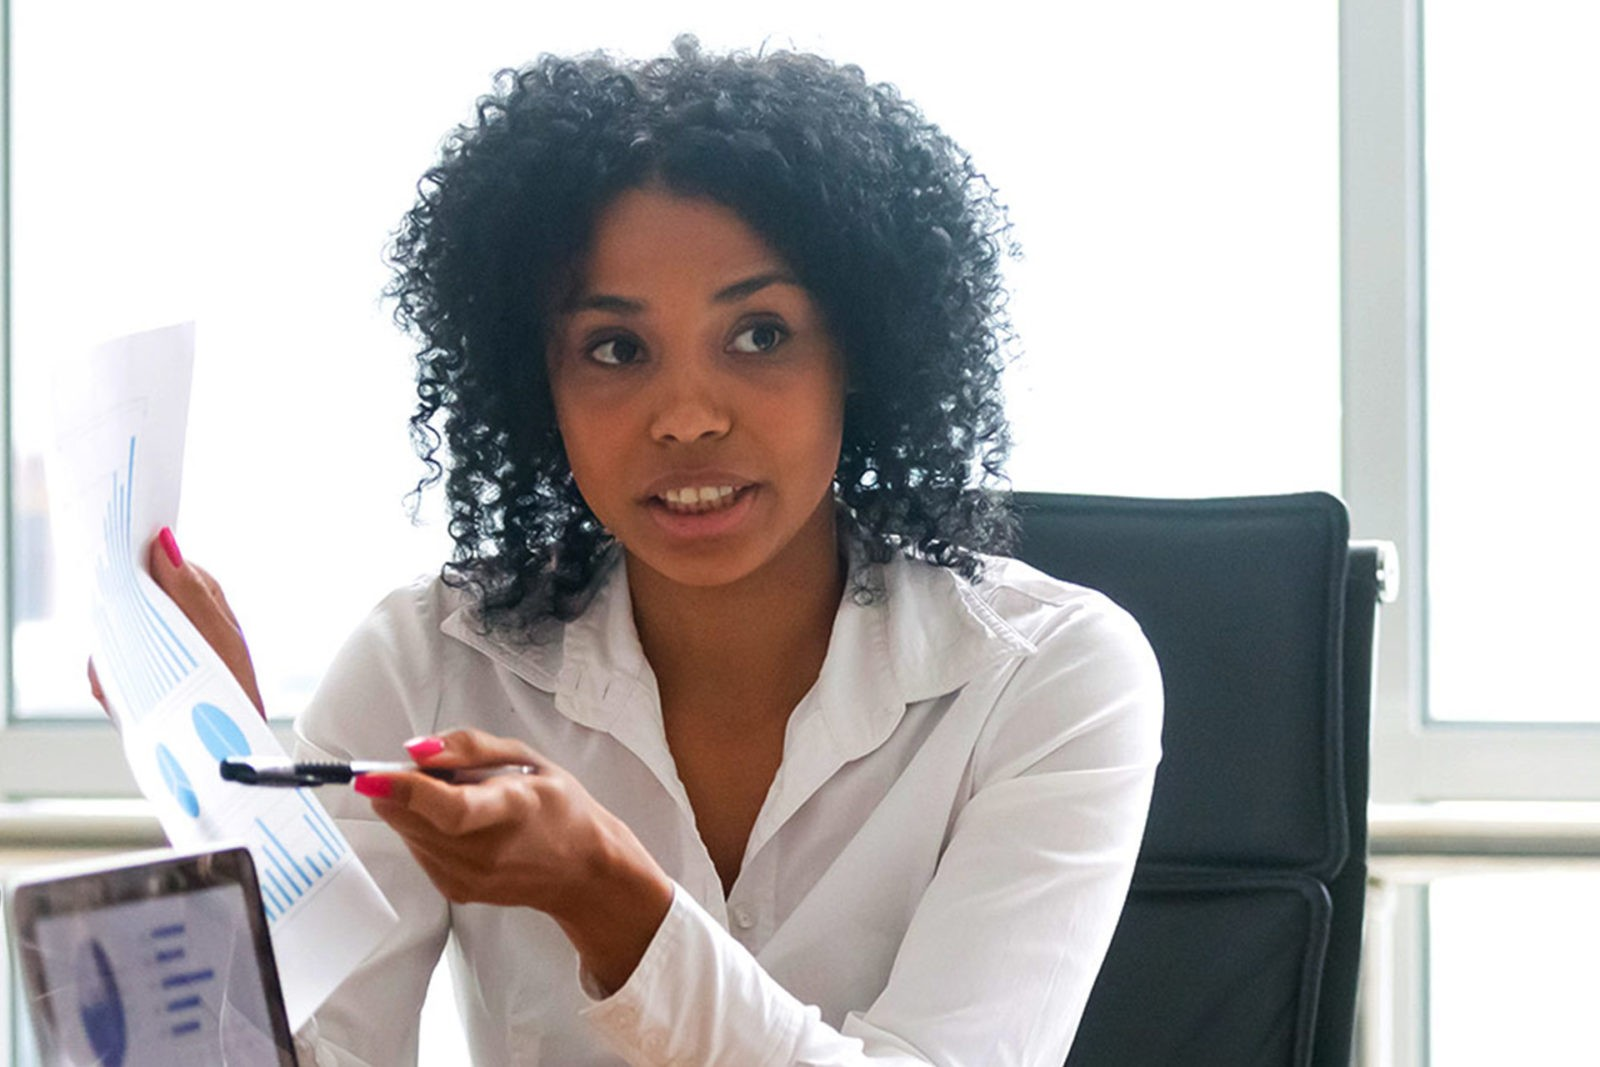 Business woman sitting at desk and pointing to flow chart